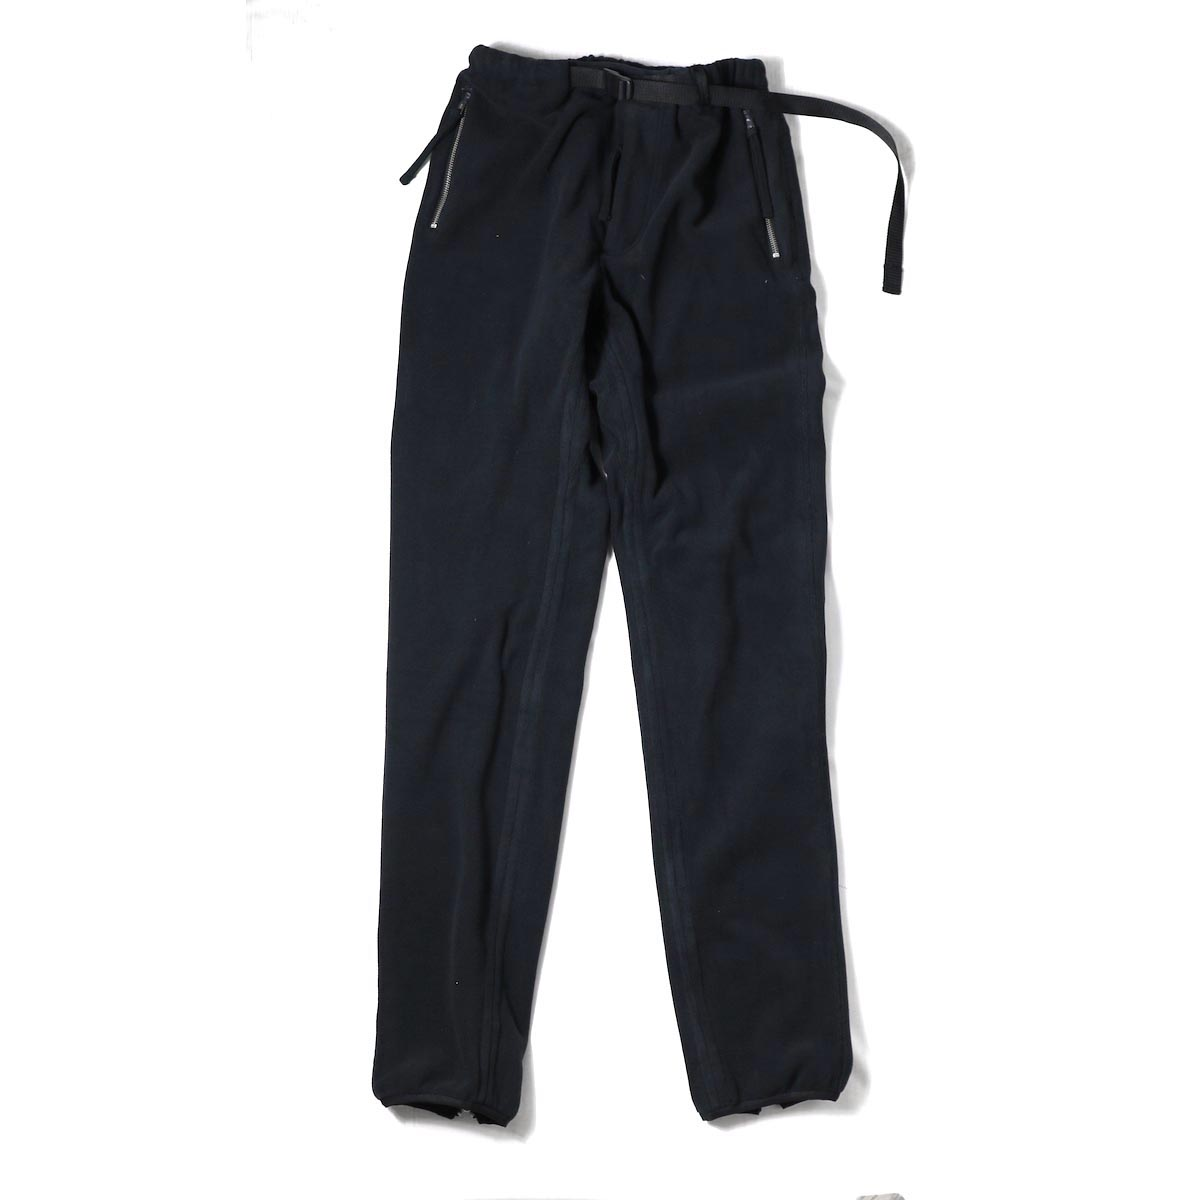 The Soloist / swp.0004AW18 regulator pants.